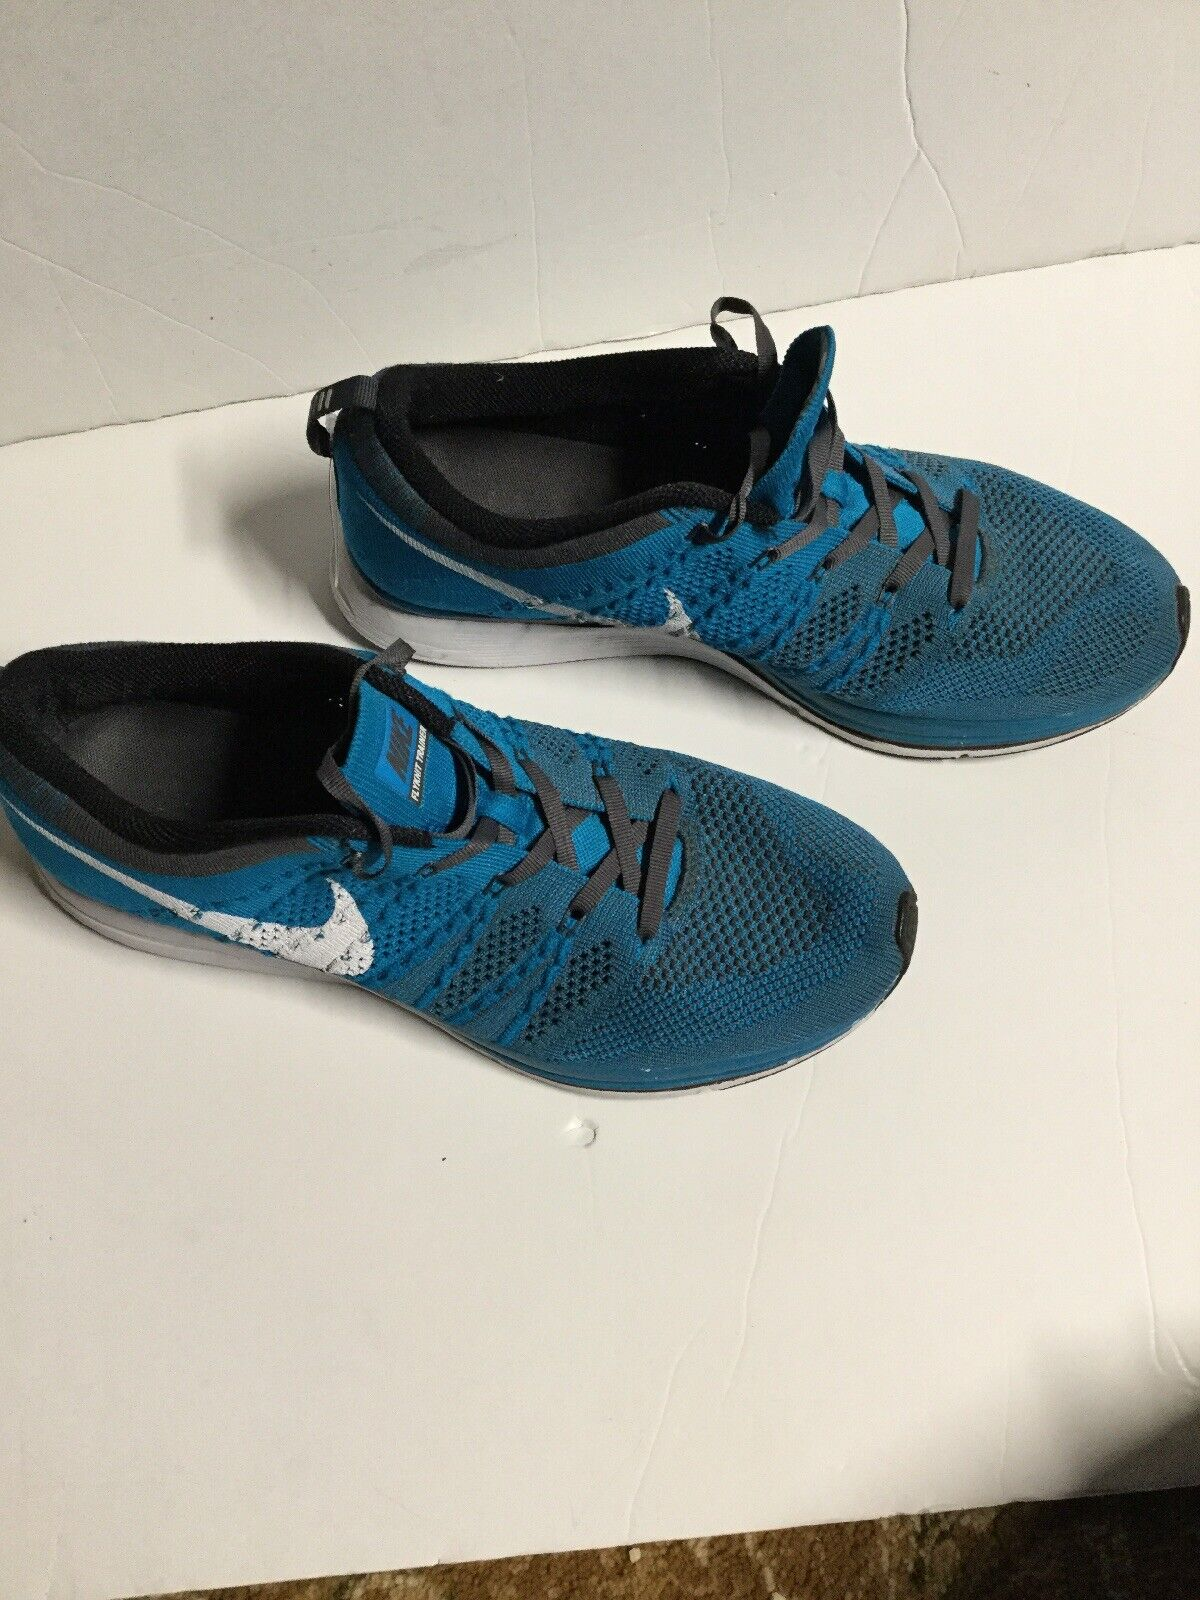 Nike Flyknit Trainer Size Size Size 9 Neo Turquoise Sneaker 532984-410. ff35a9